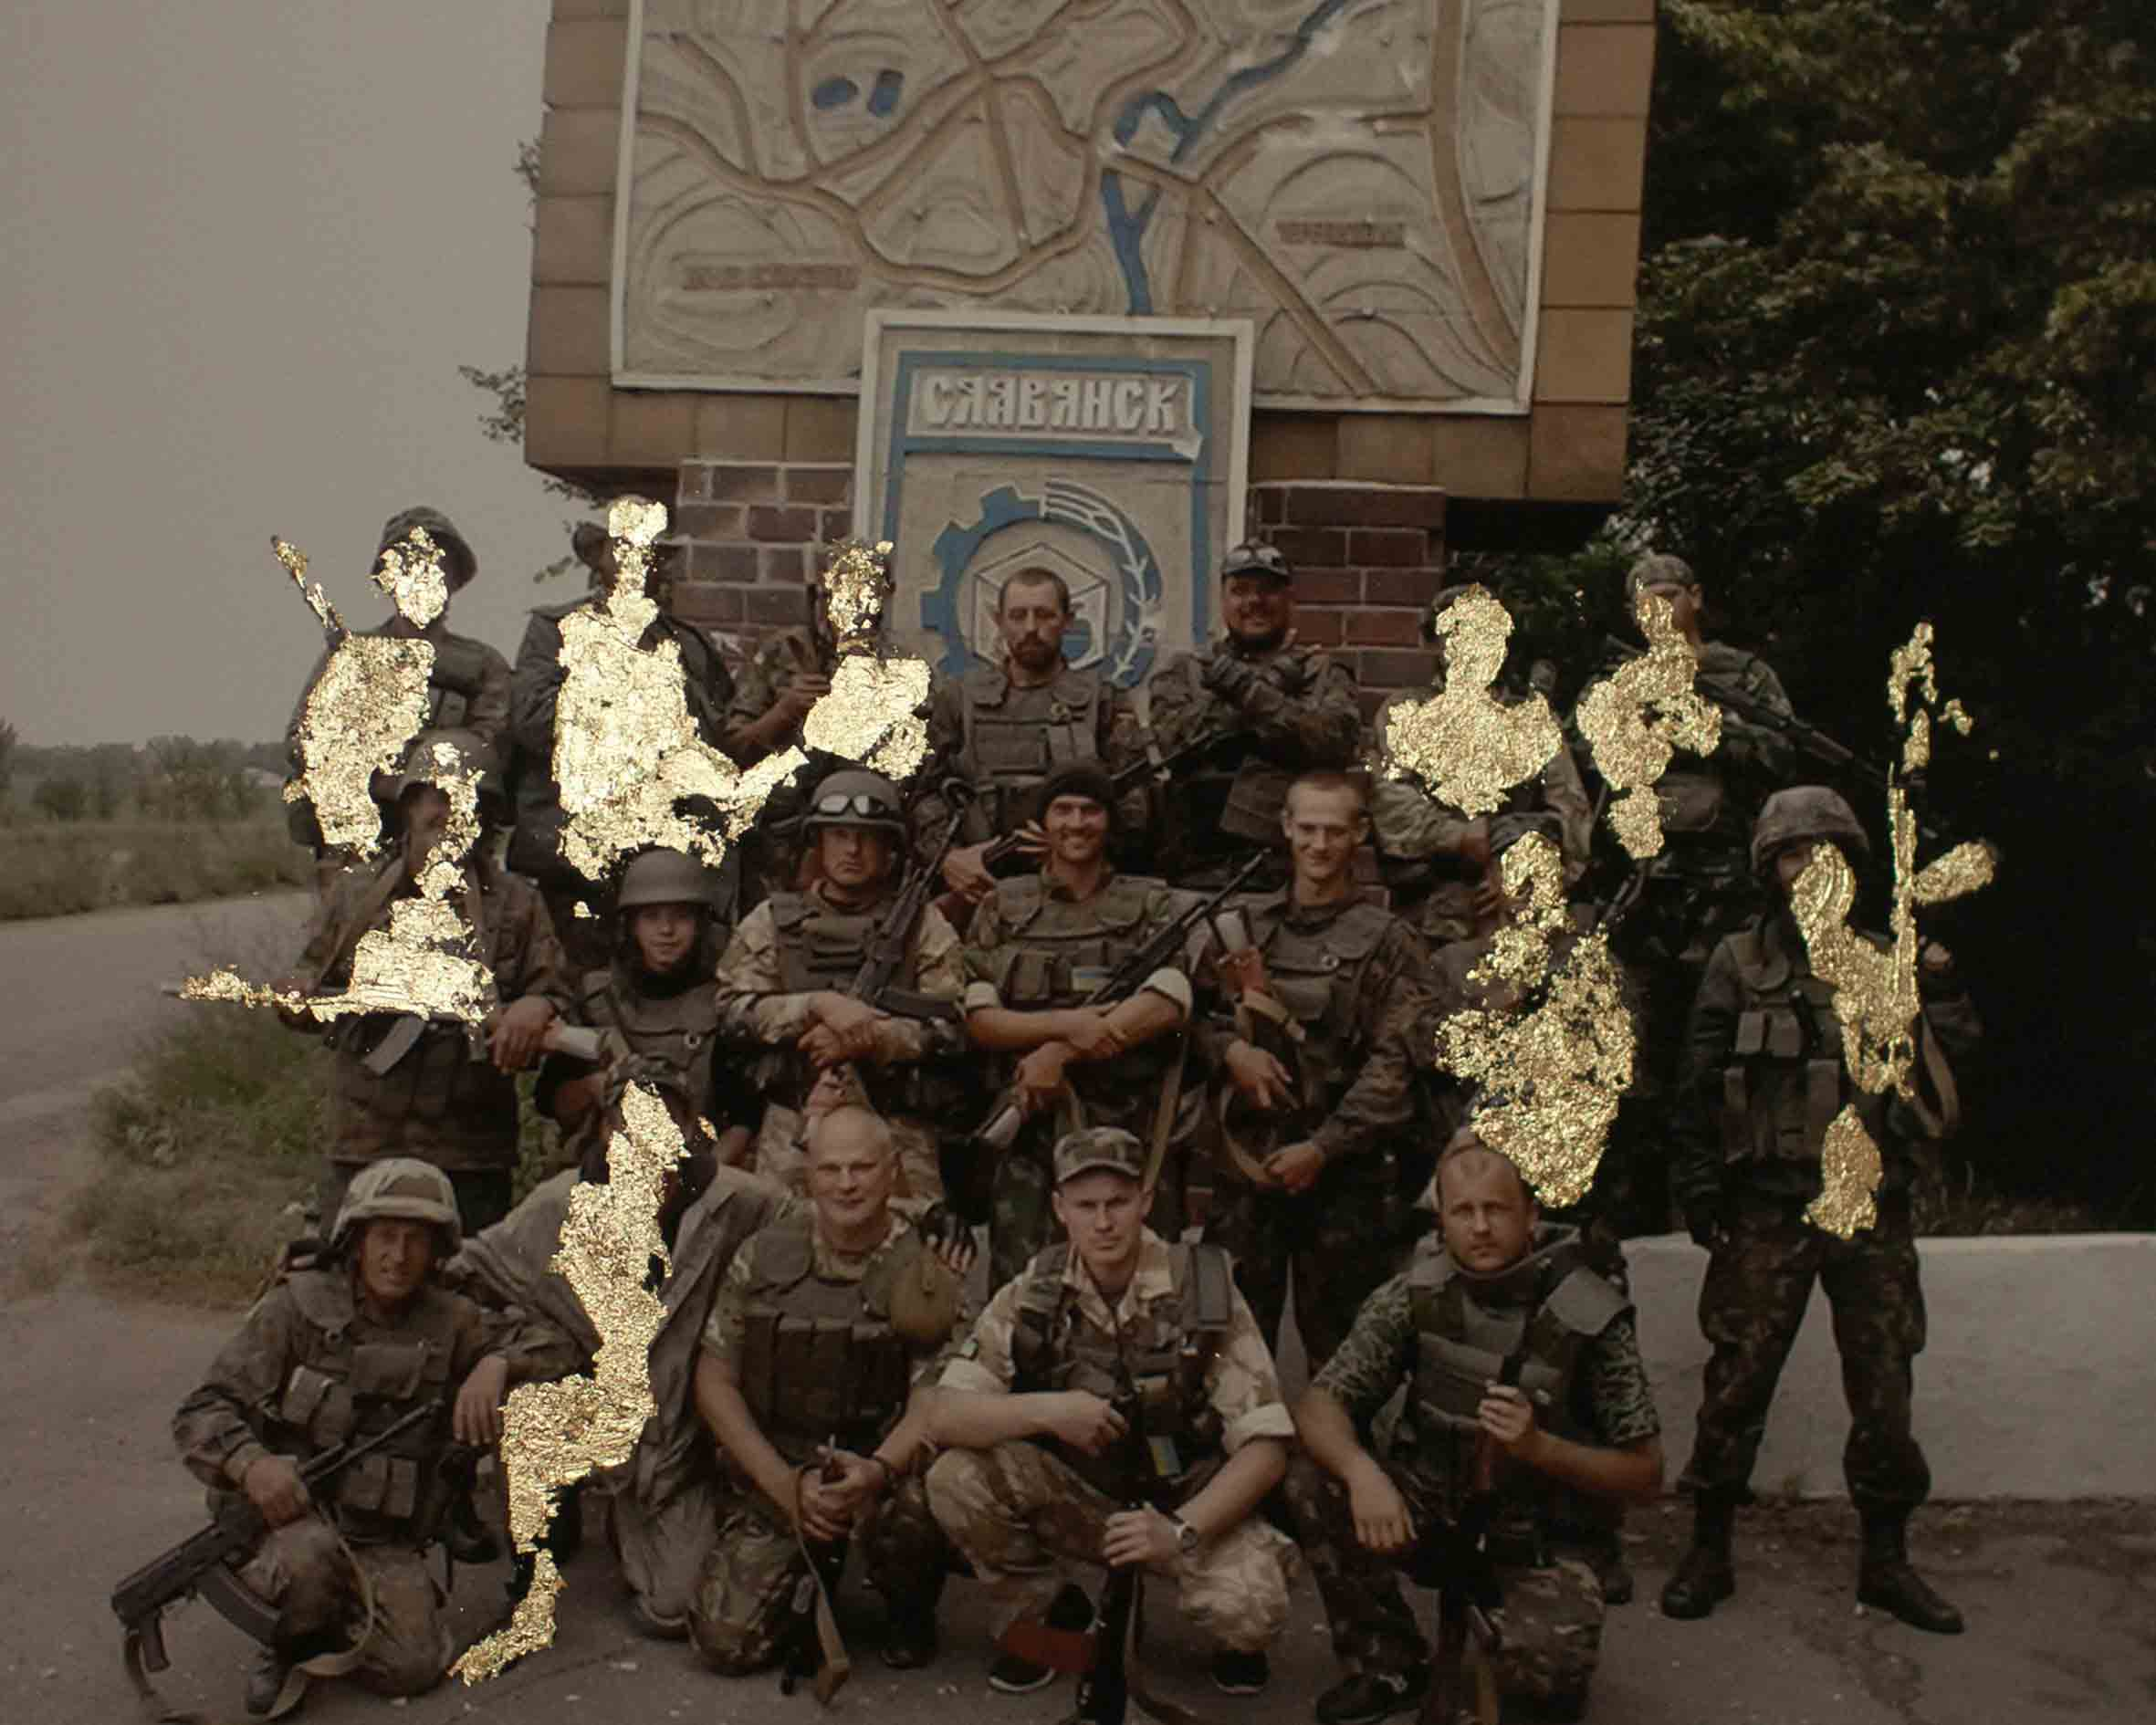 Wiktoria Wokciechowska,  The squad of nine killed and eight wounded , from the series of  Golden Collages - Sparks , collage on picture from a soldier's mobile phone's, 2015-2016. Courtesy of the artist.